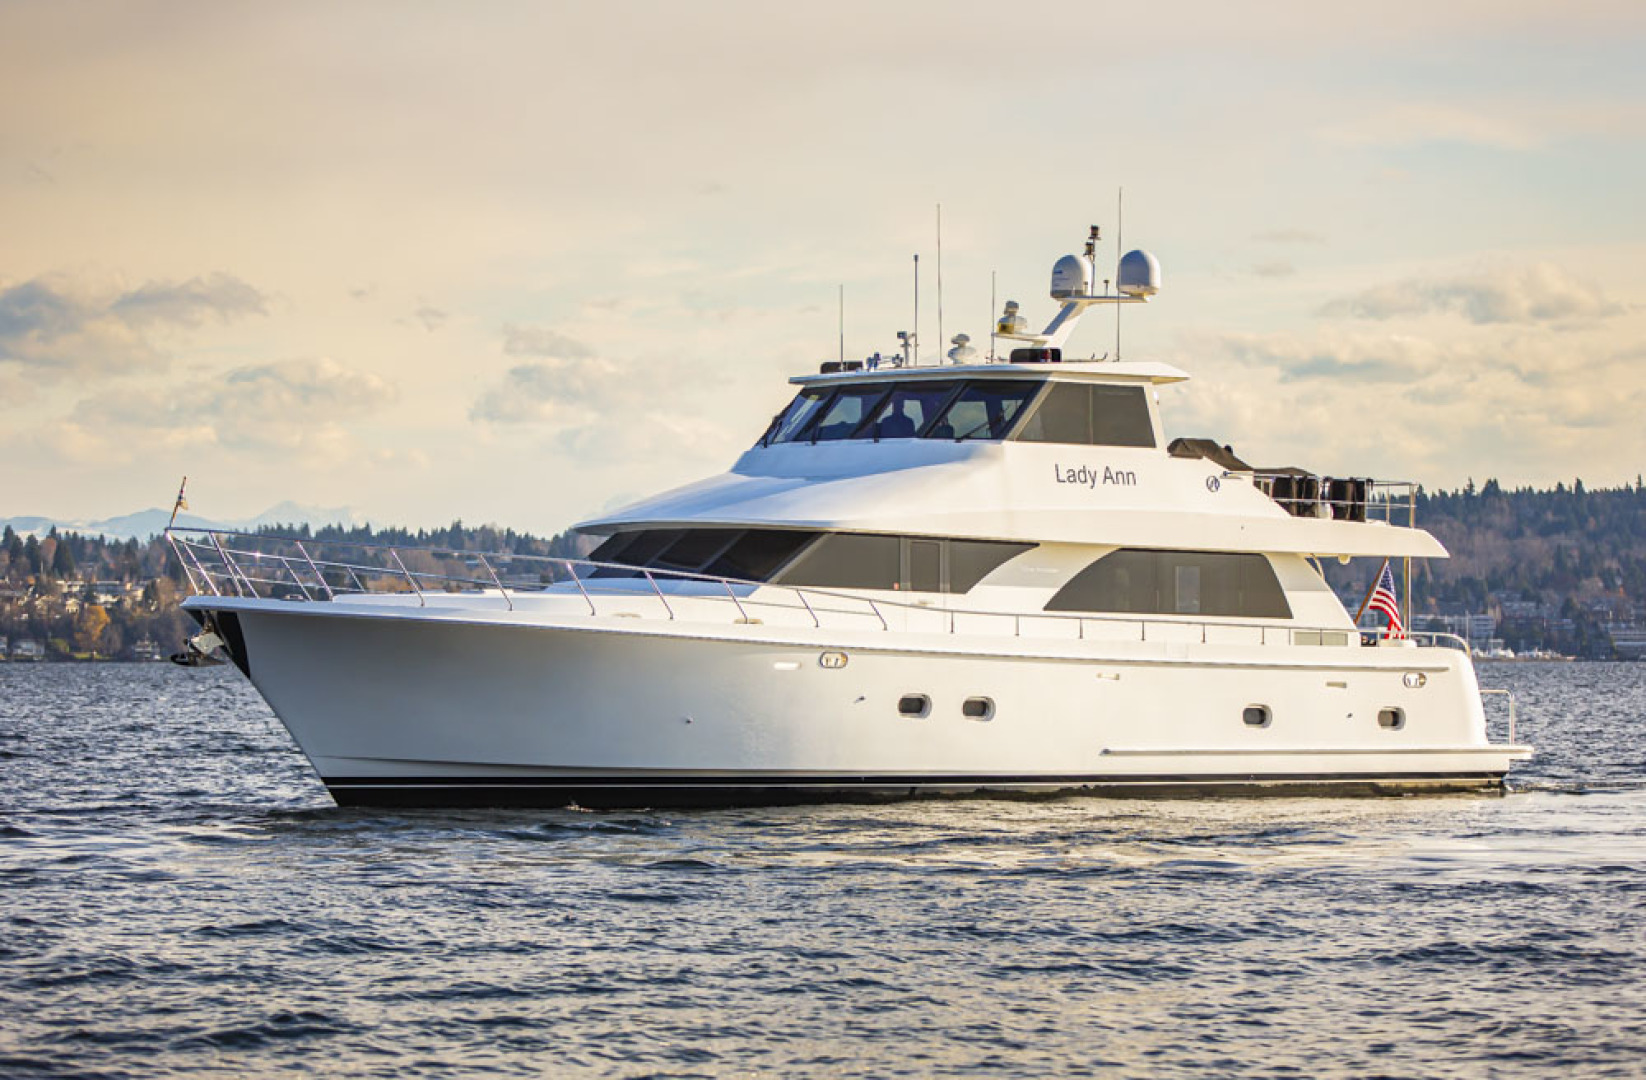 Ocean Alexander-OA 74 2007-LADY ANN Seattle-Washington-United States-Lady Ann 74 Ocean Alexander-1279974 | Thumbnail